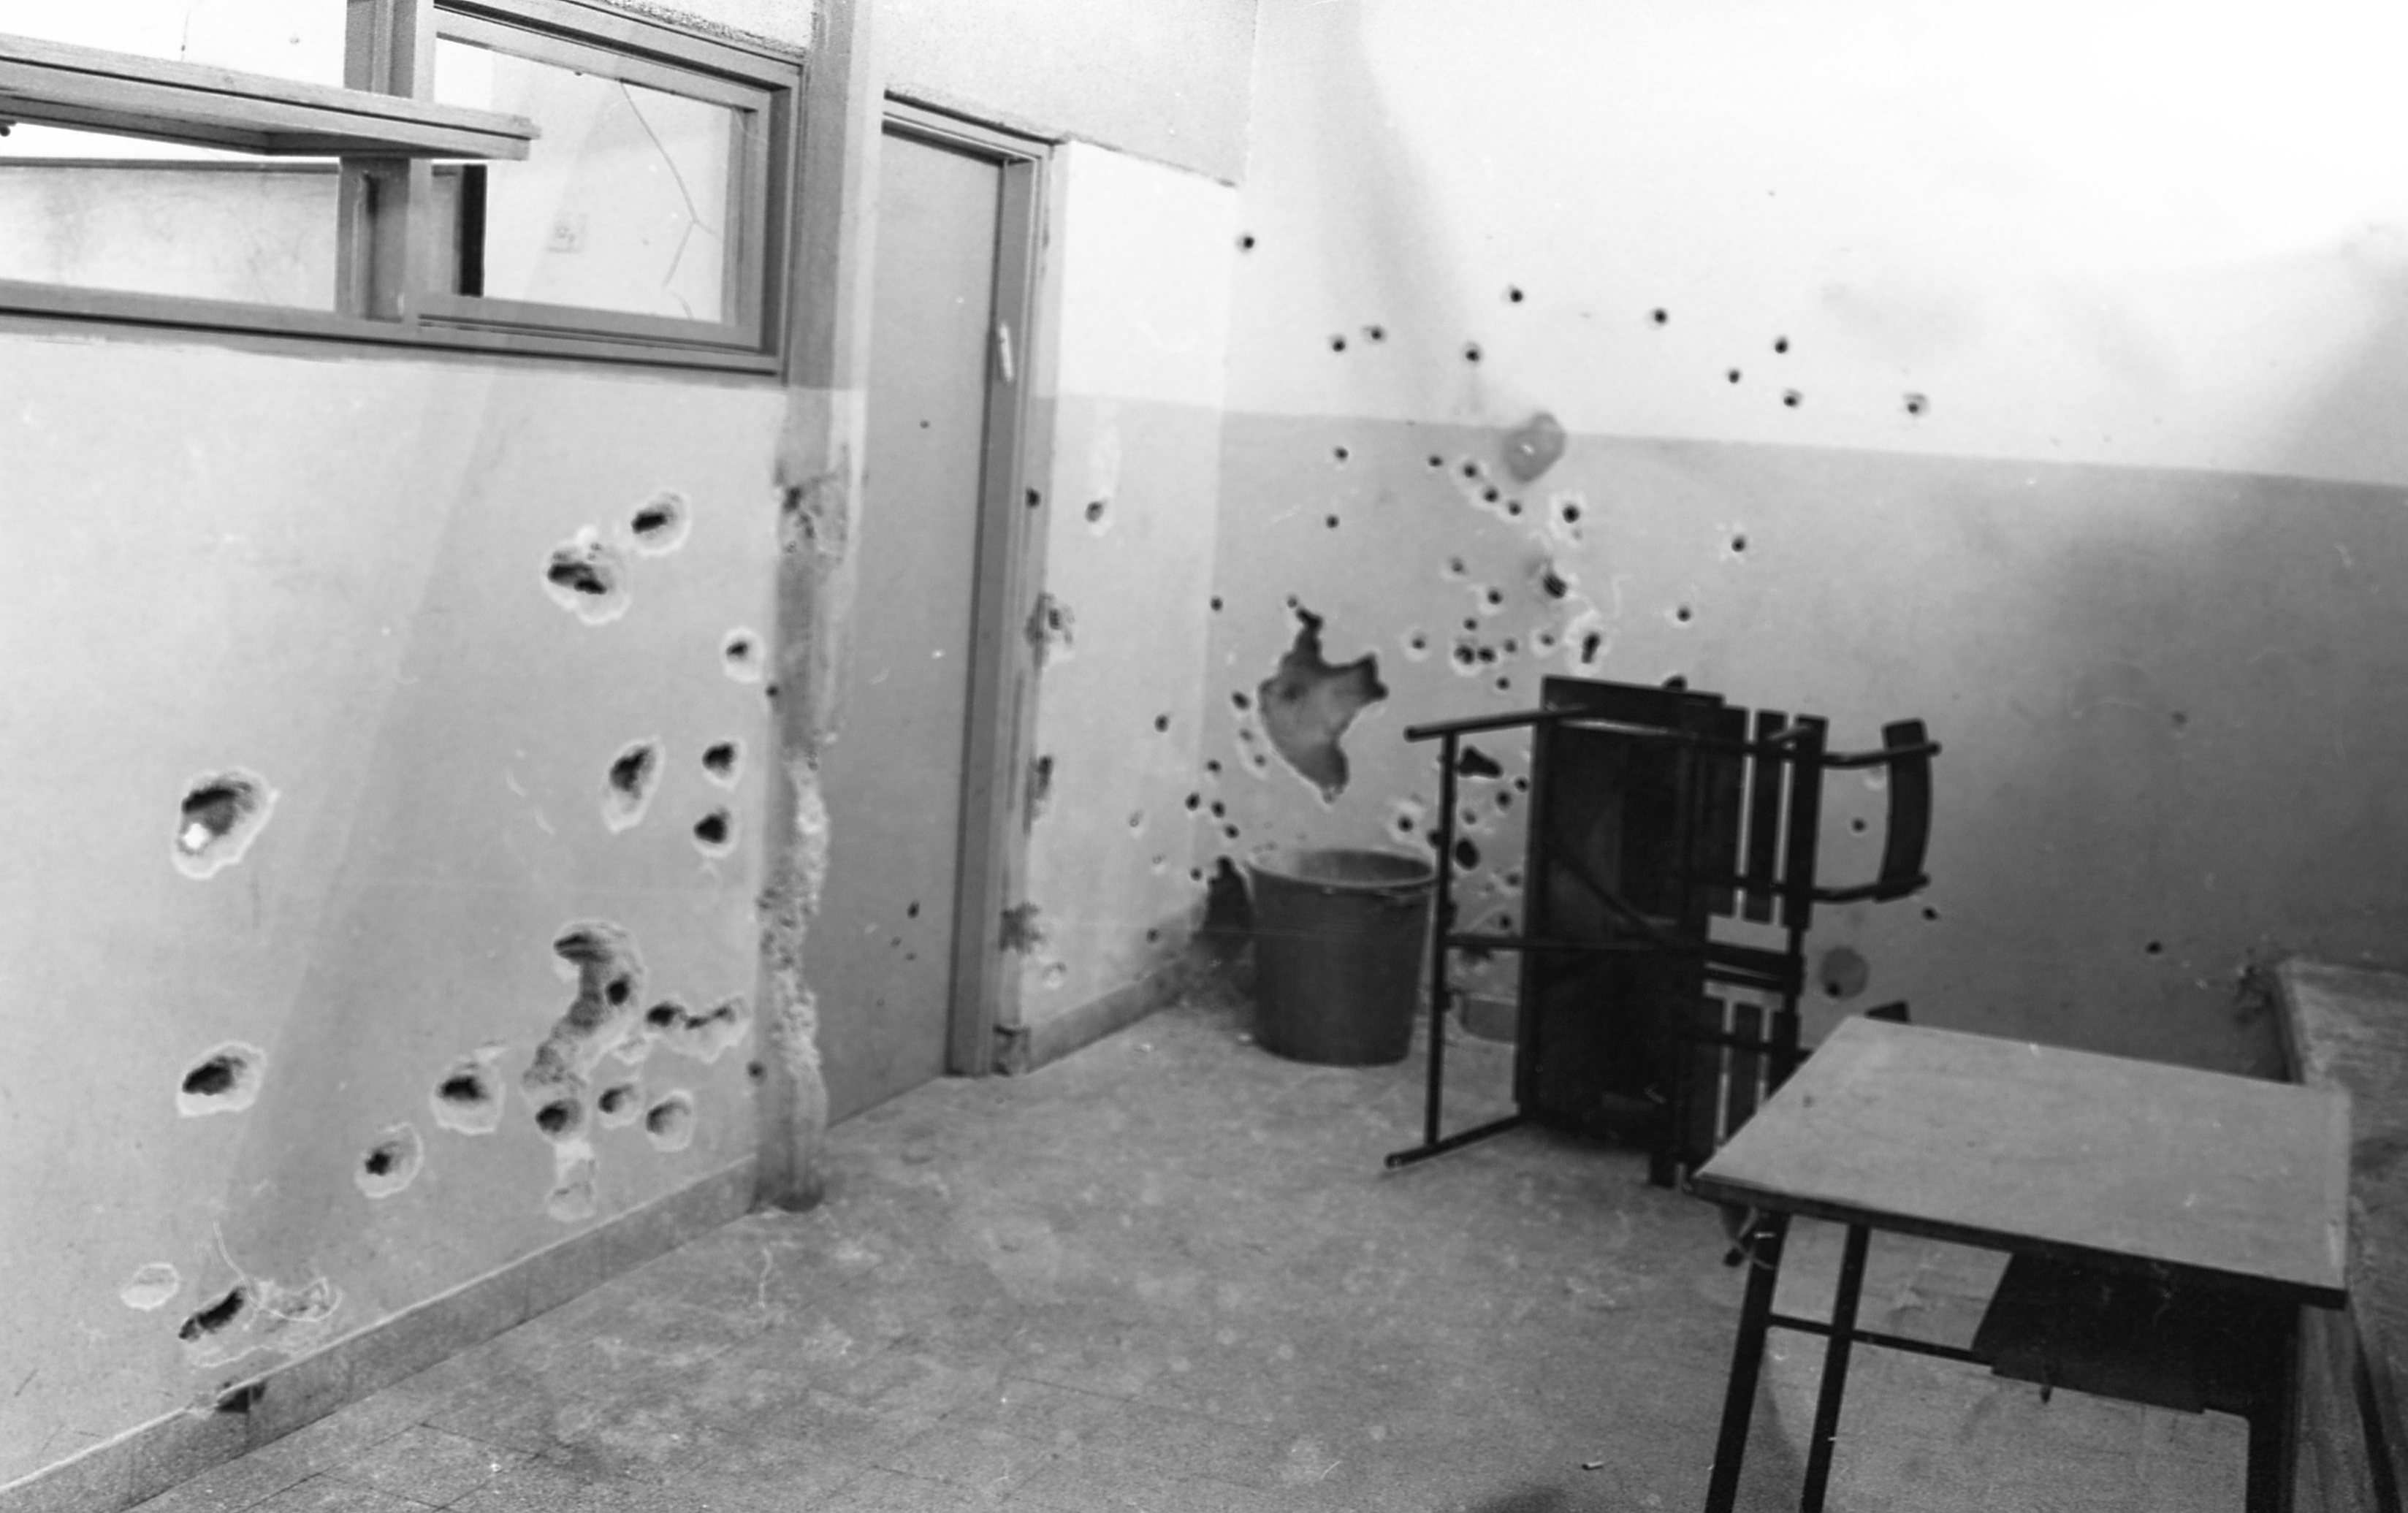 An Arab terrorist group attacked a school at Maalot killing several children and wounded thenth of them. IDF attacked the group killing the terrorists.Photo shows the classroom after the incident 1974/05/16 Copyright © IPPA 09240-001-31 Photo by IPPA Staff